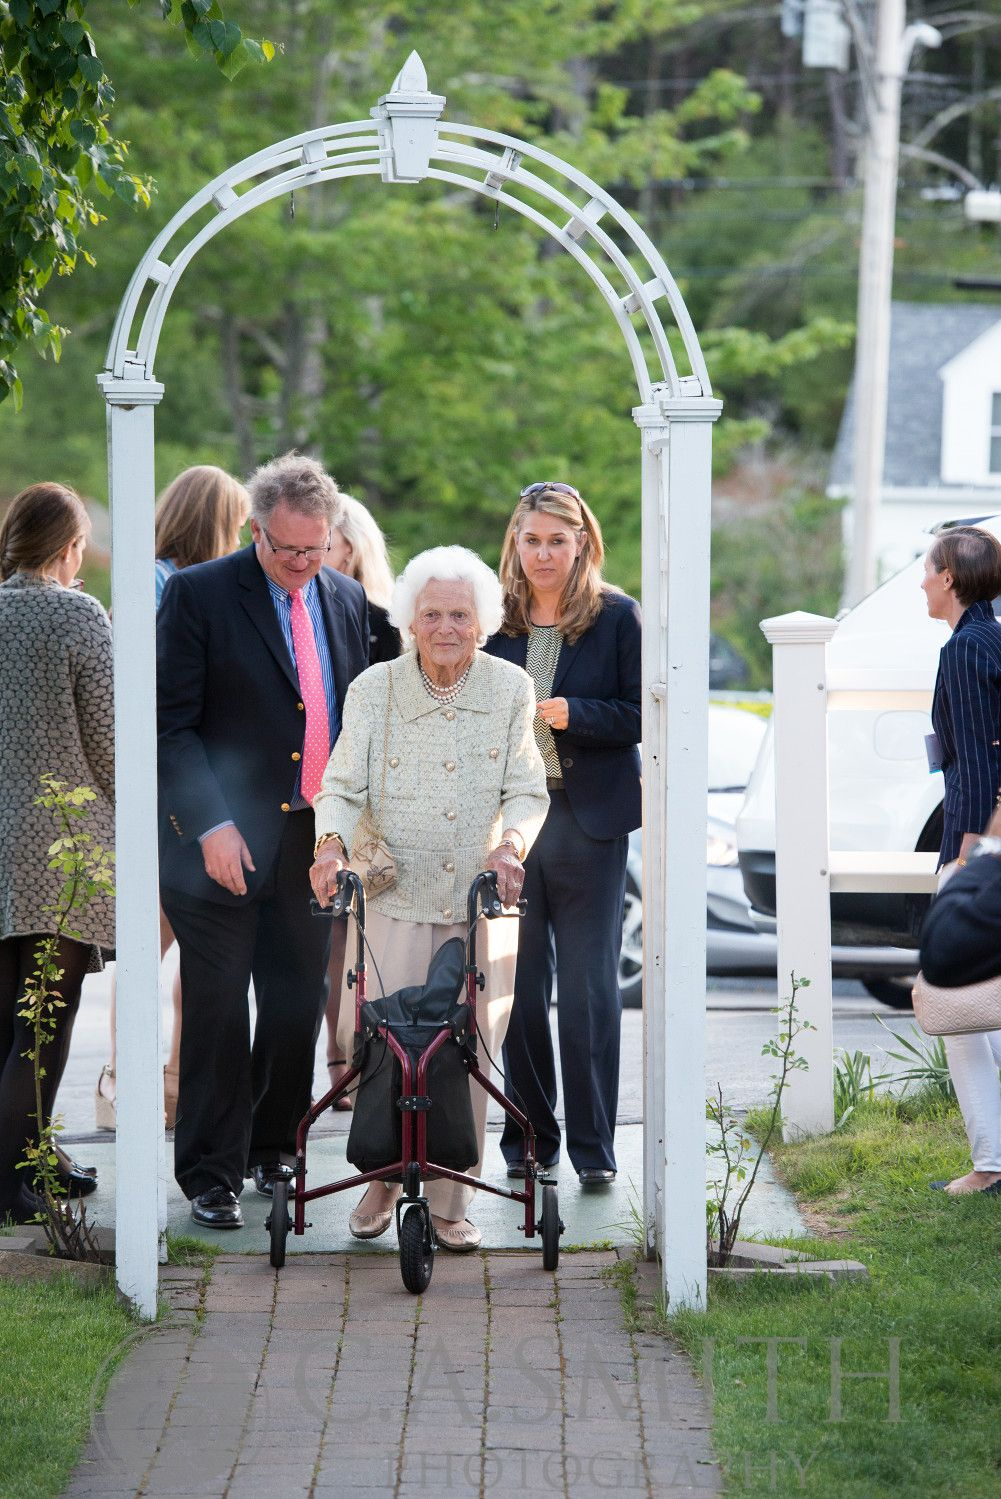 Barbara Bush's 90th birthday celebration at the Ogunquit Playhouse. Upscale catering by Foster's Premium Catering, York, Maine http://www.fosterpremium.com